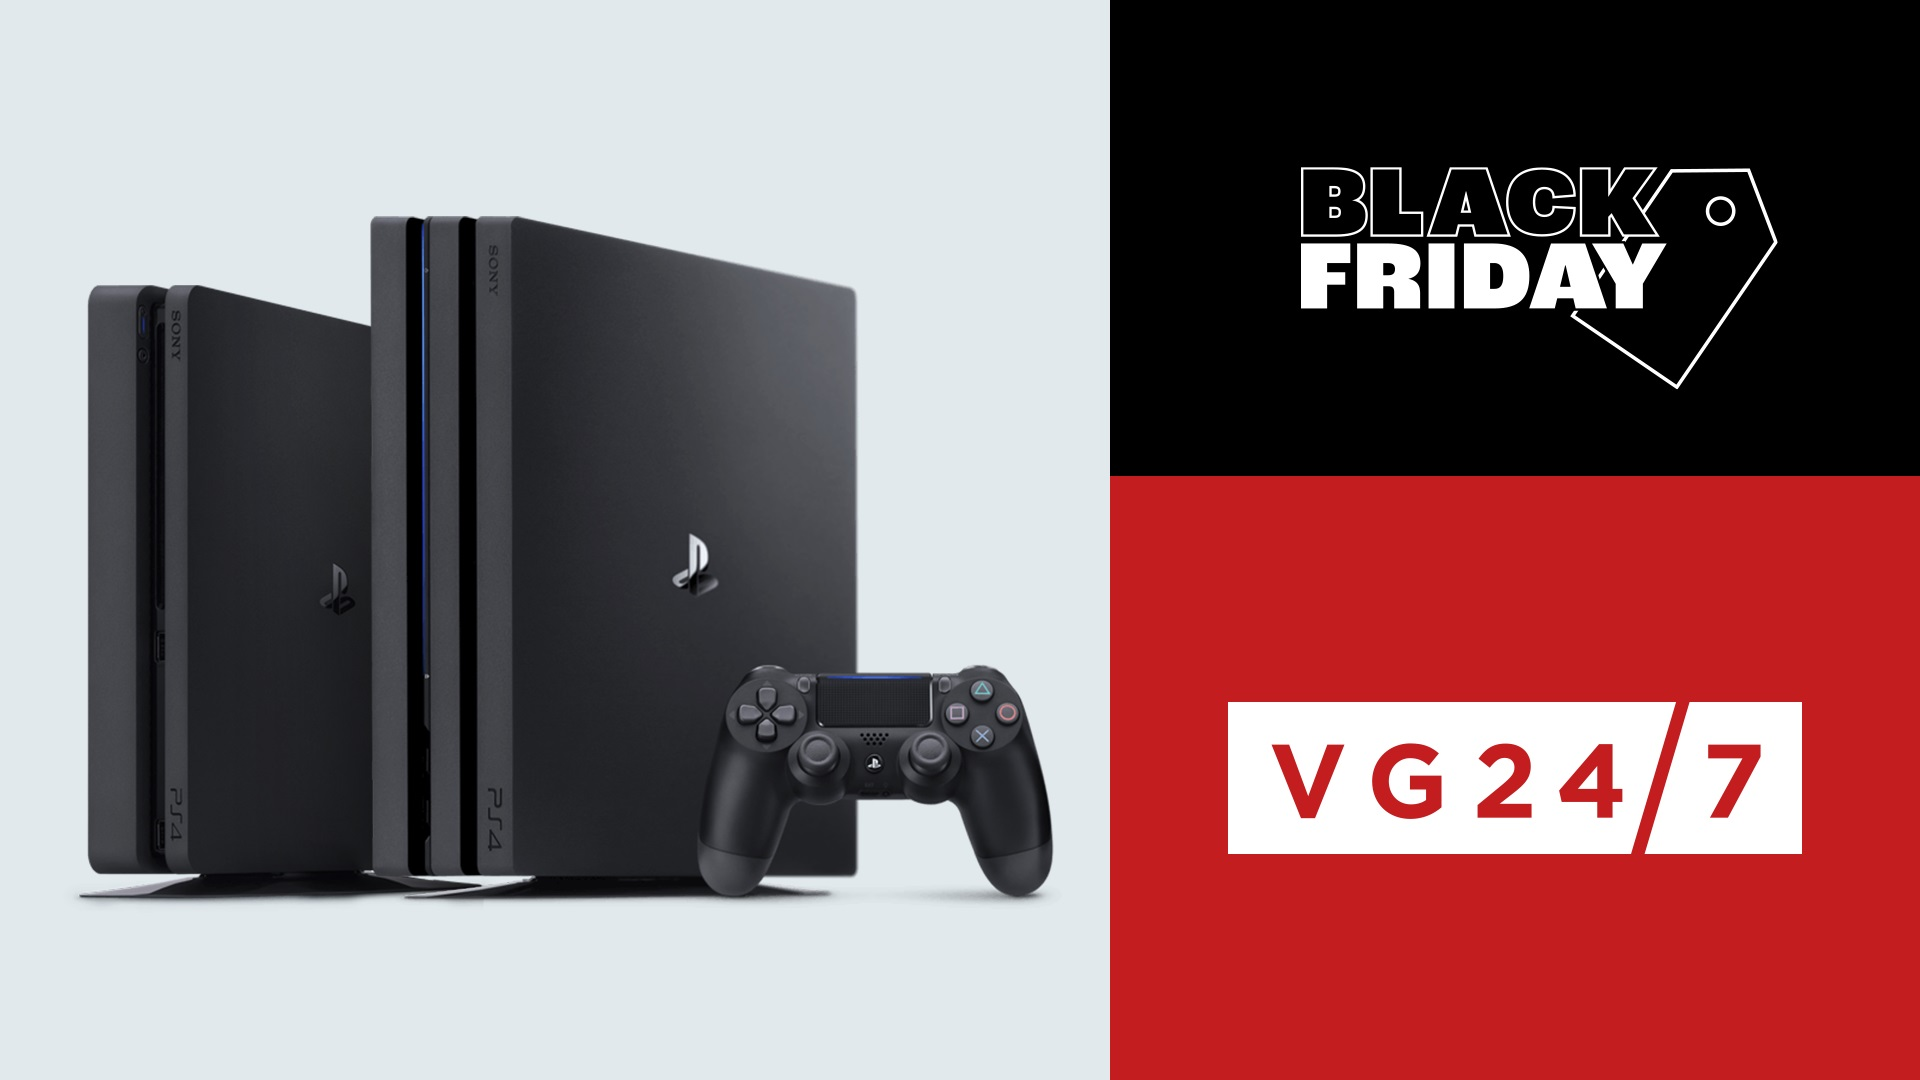 Ps4 Black Friday Deals 2020 Vg247